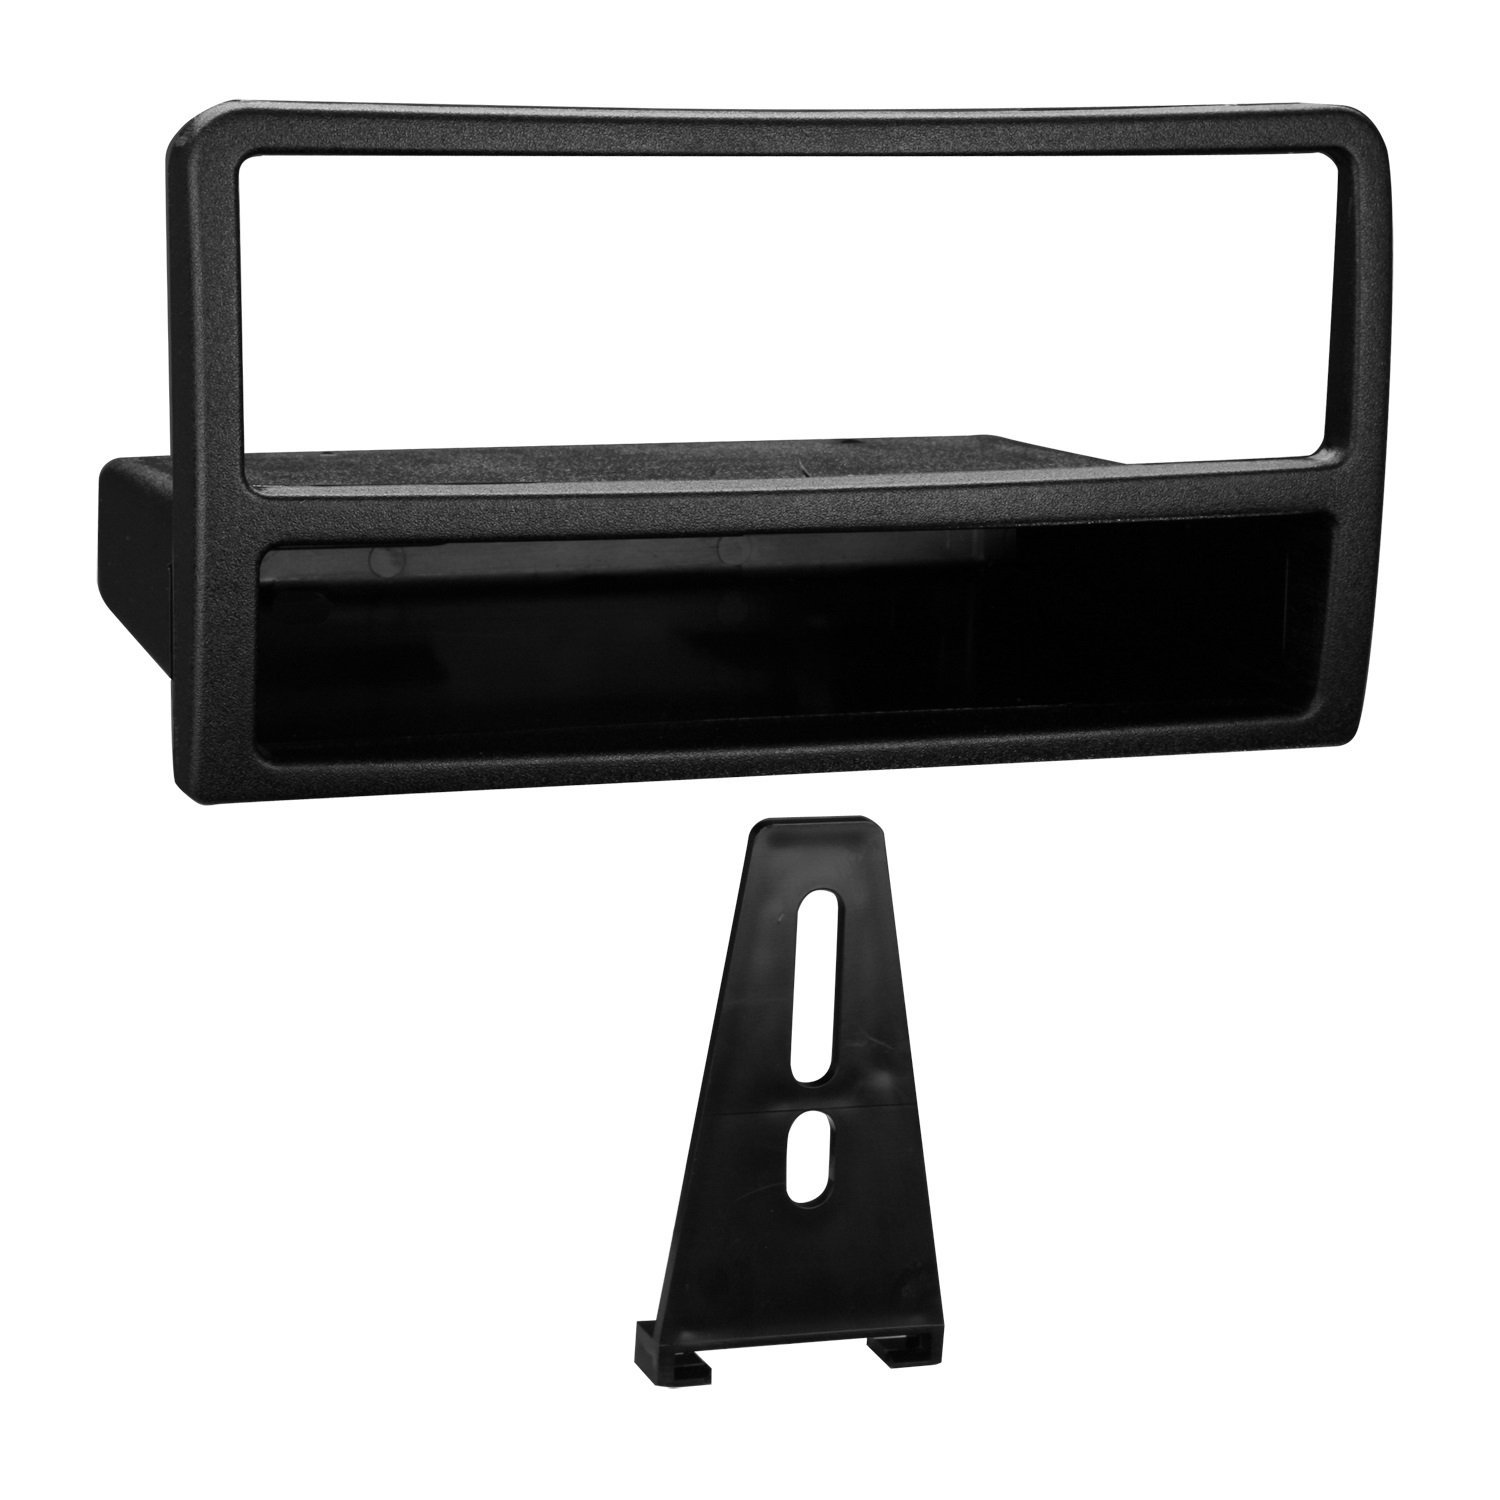 99-5200 Installation Kit for 1999-2004 Ford Focus/1999-2002 Mercury Cougar  Vehicles (Black)Quickly And Easily Installs By Metra - Walmart.com